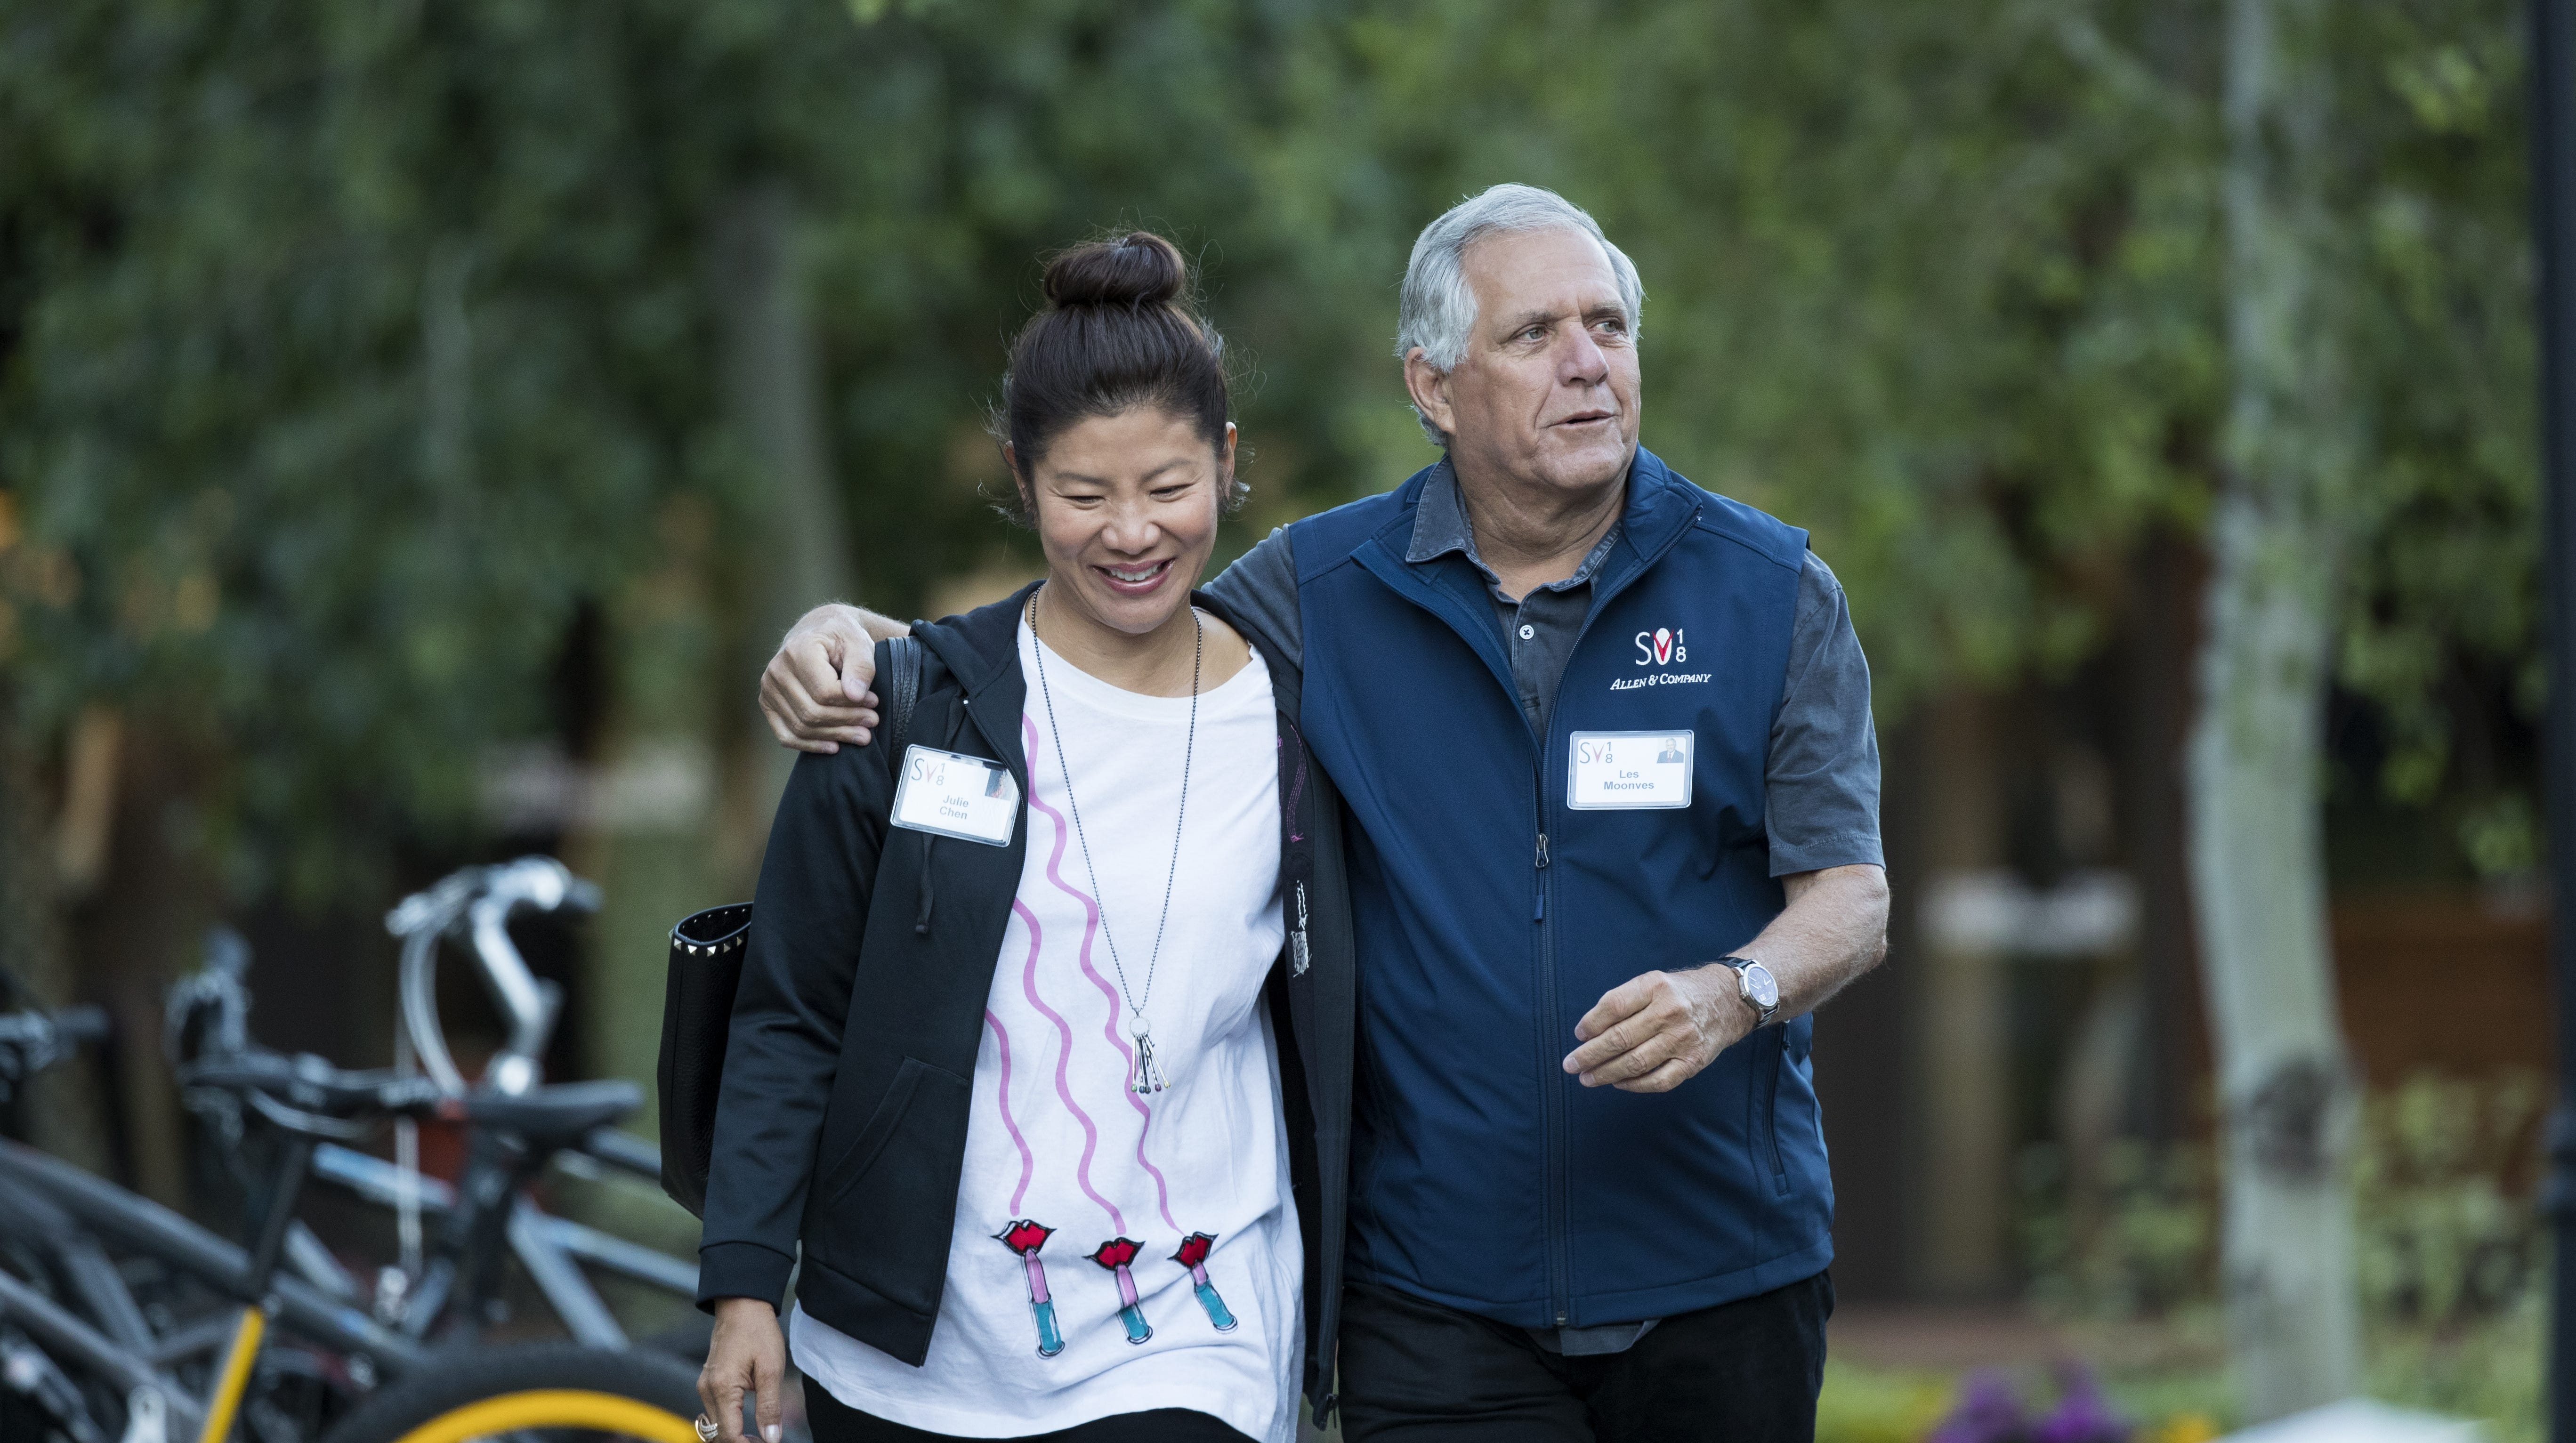 Julie Chen and Leslie Moonves on July 11, 2018, in Sun Valley, Idaho.